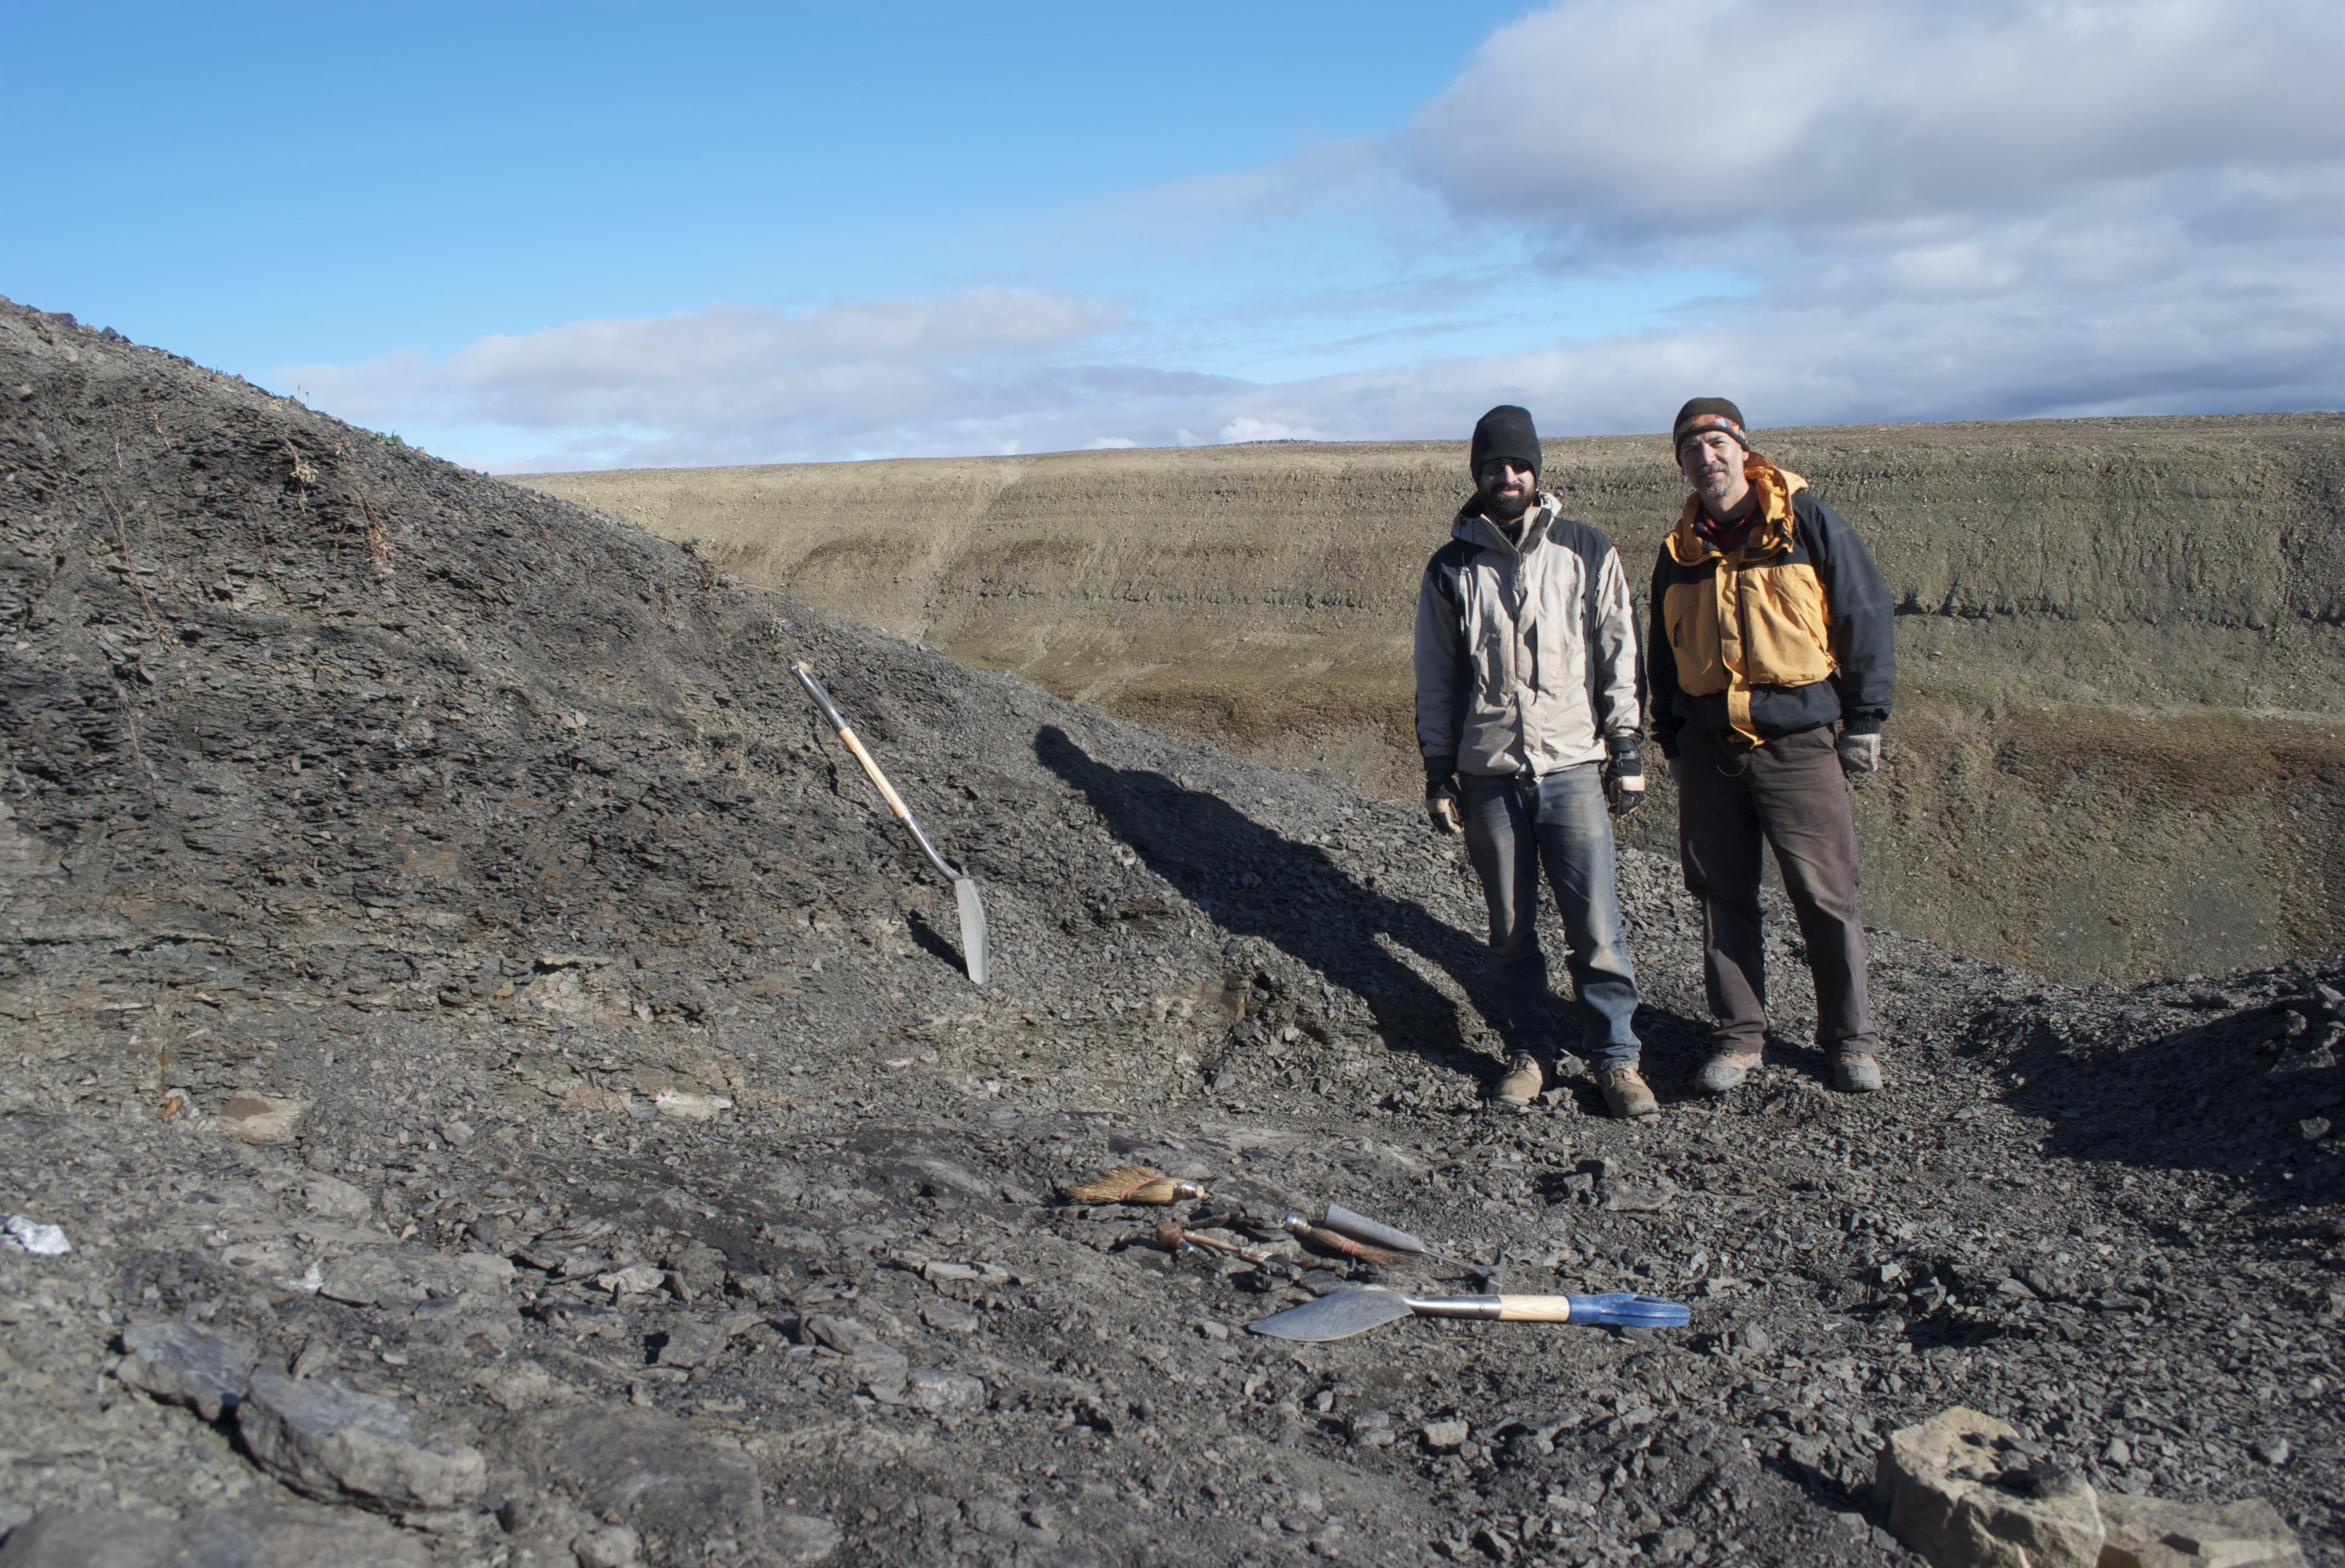 Academy scientists Jason Downs, PhD, and Ted Daeschler, PhD, at the Arctic site where they discovered B. rex.